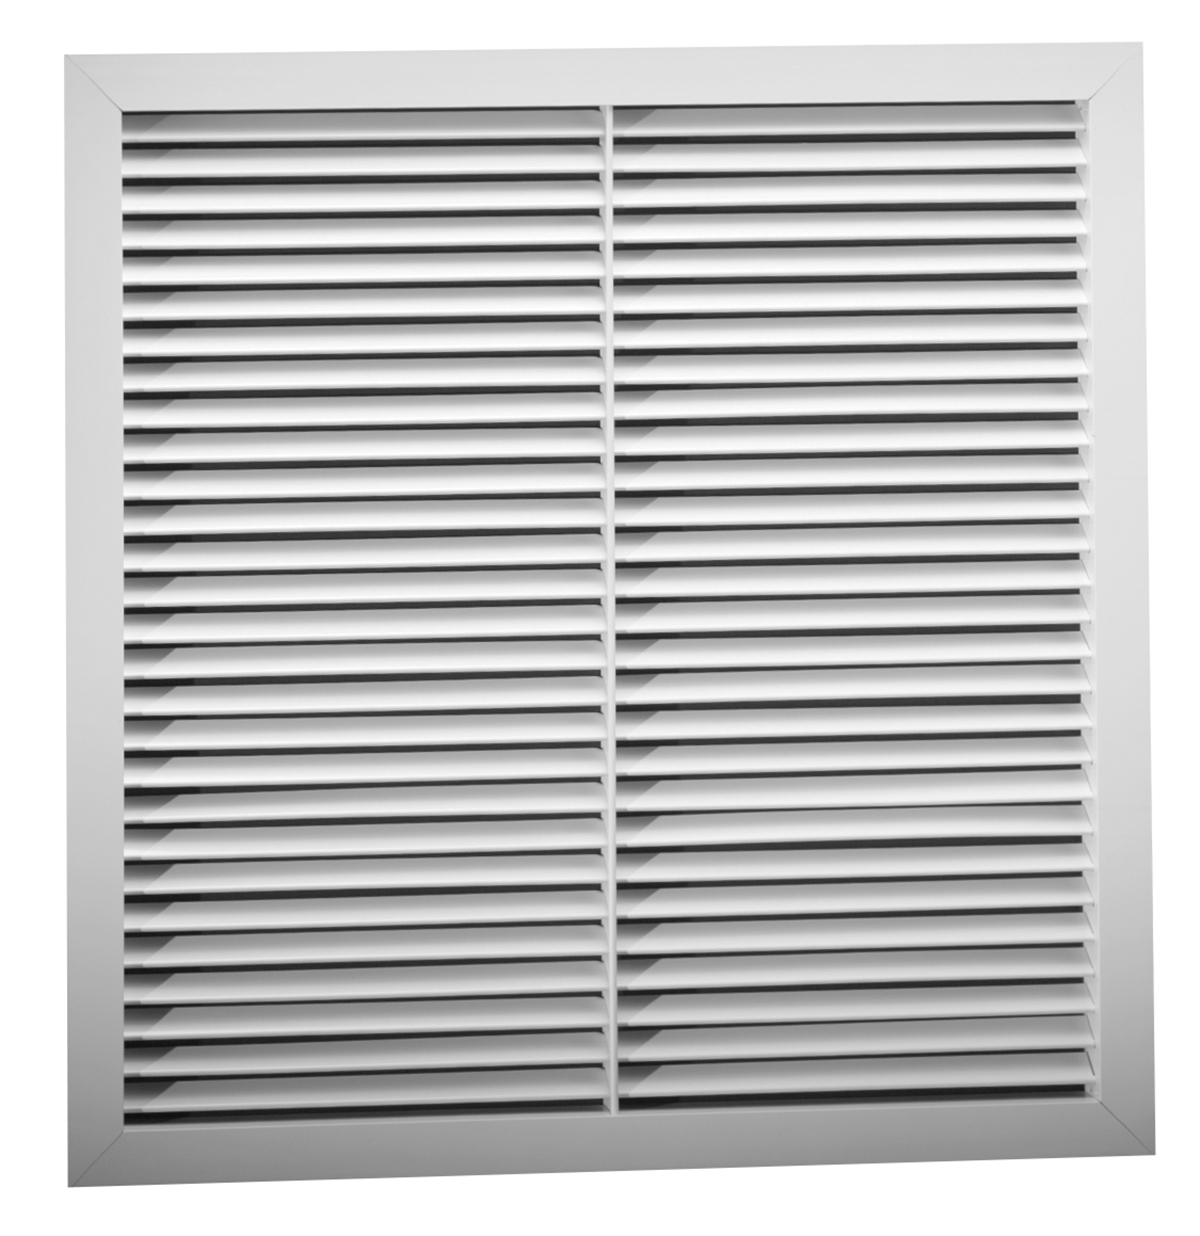 Rh45t Aluminum Return Air Grille 45 Degree Deflection